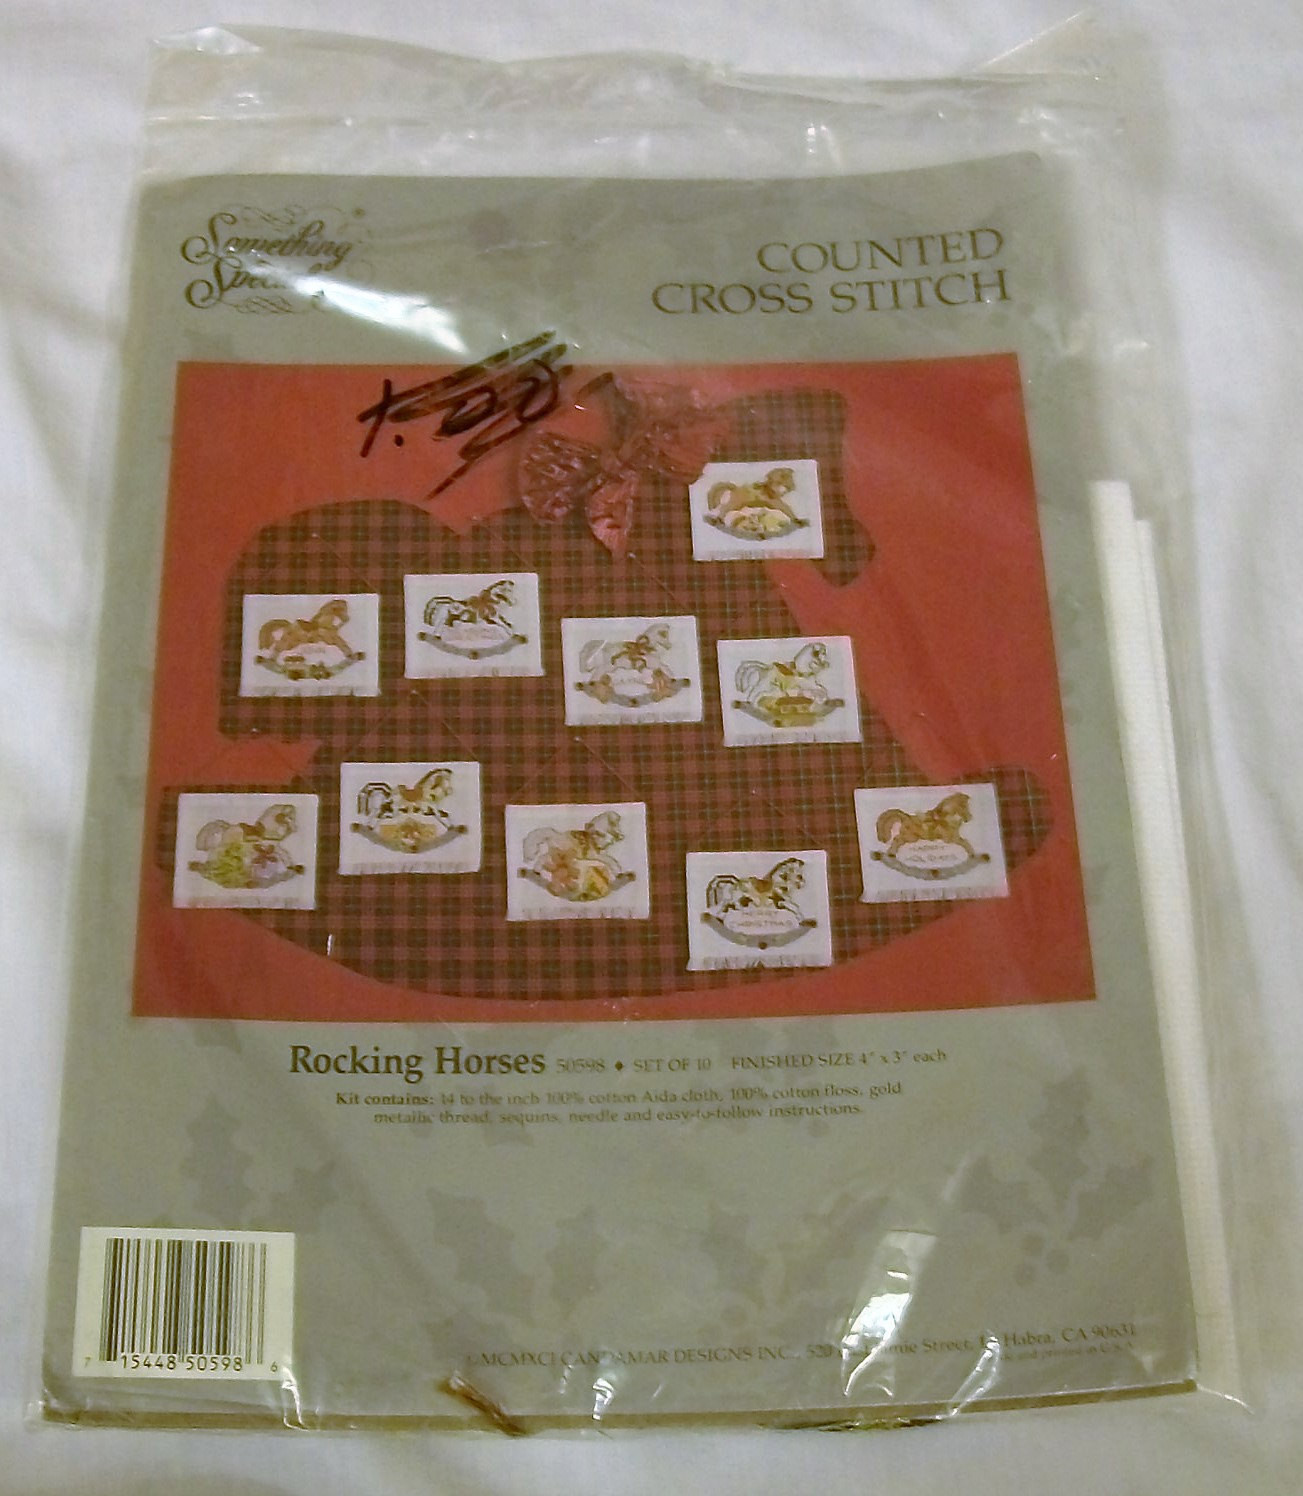 Counted Cross Stitch Kit Christmas Rocking Horses Ornaments